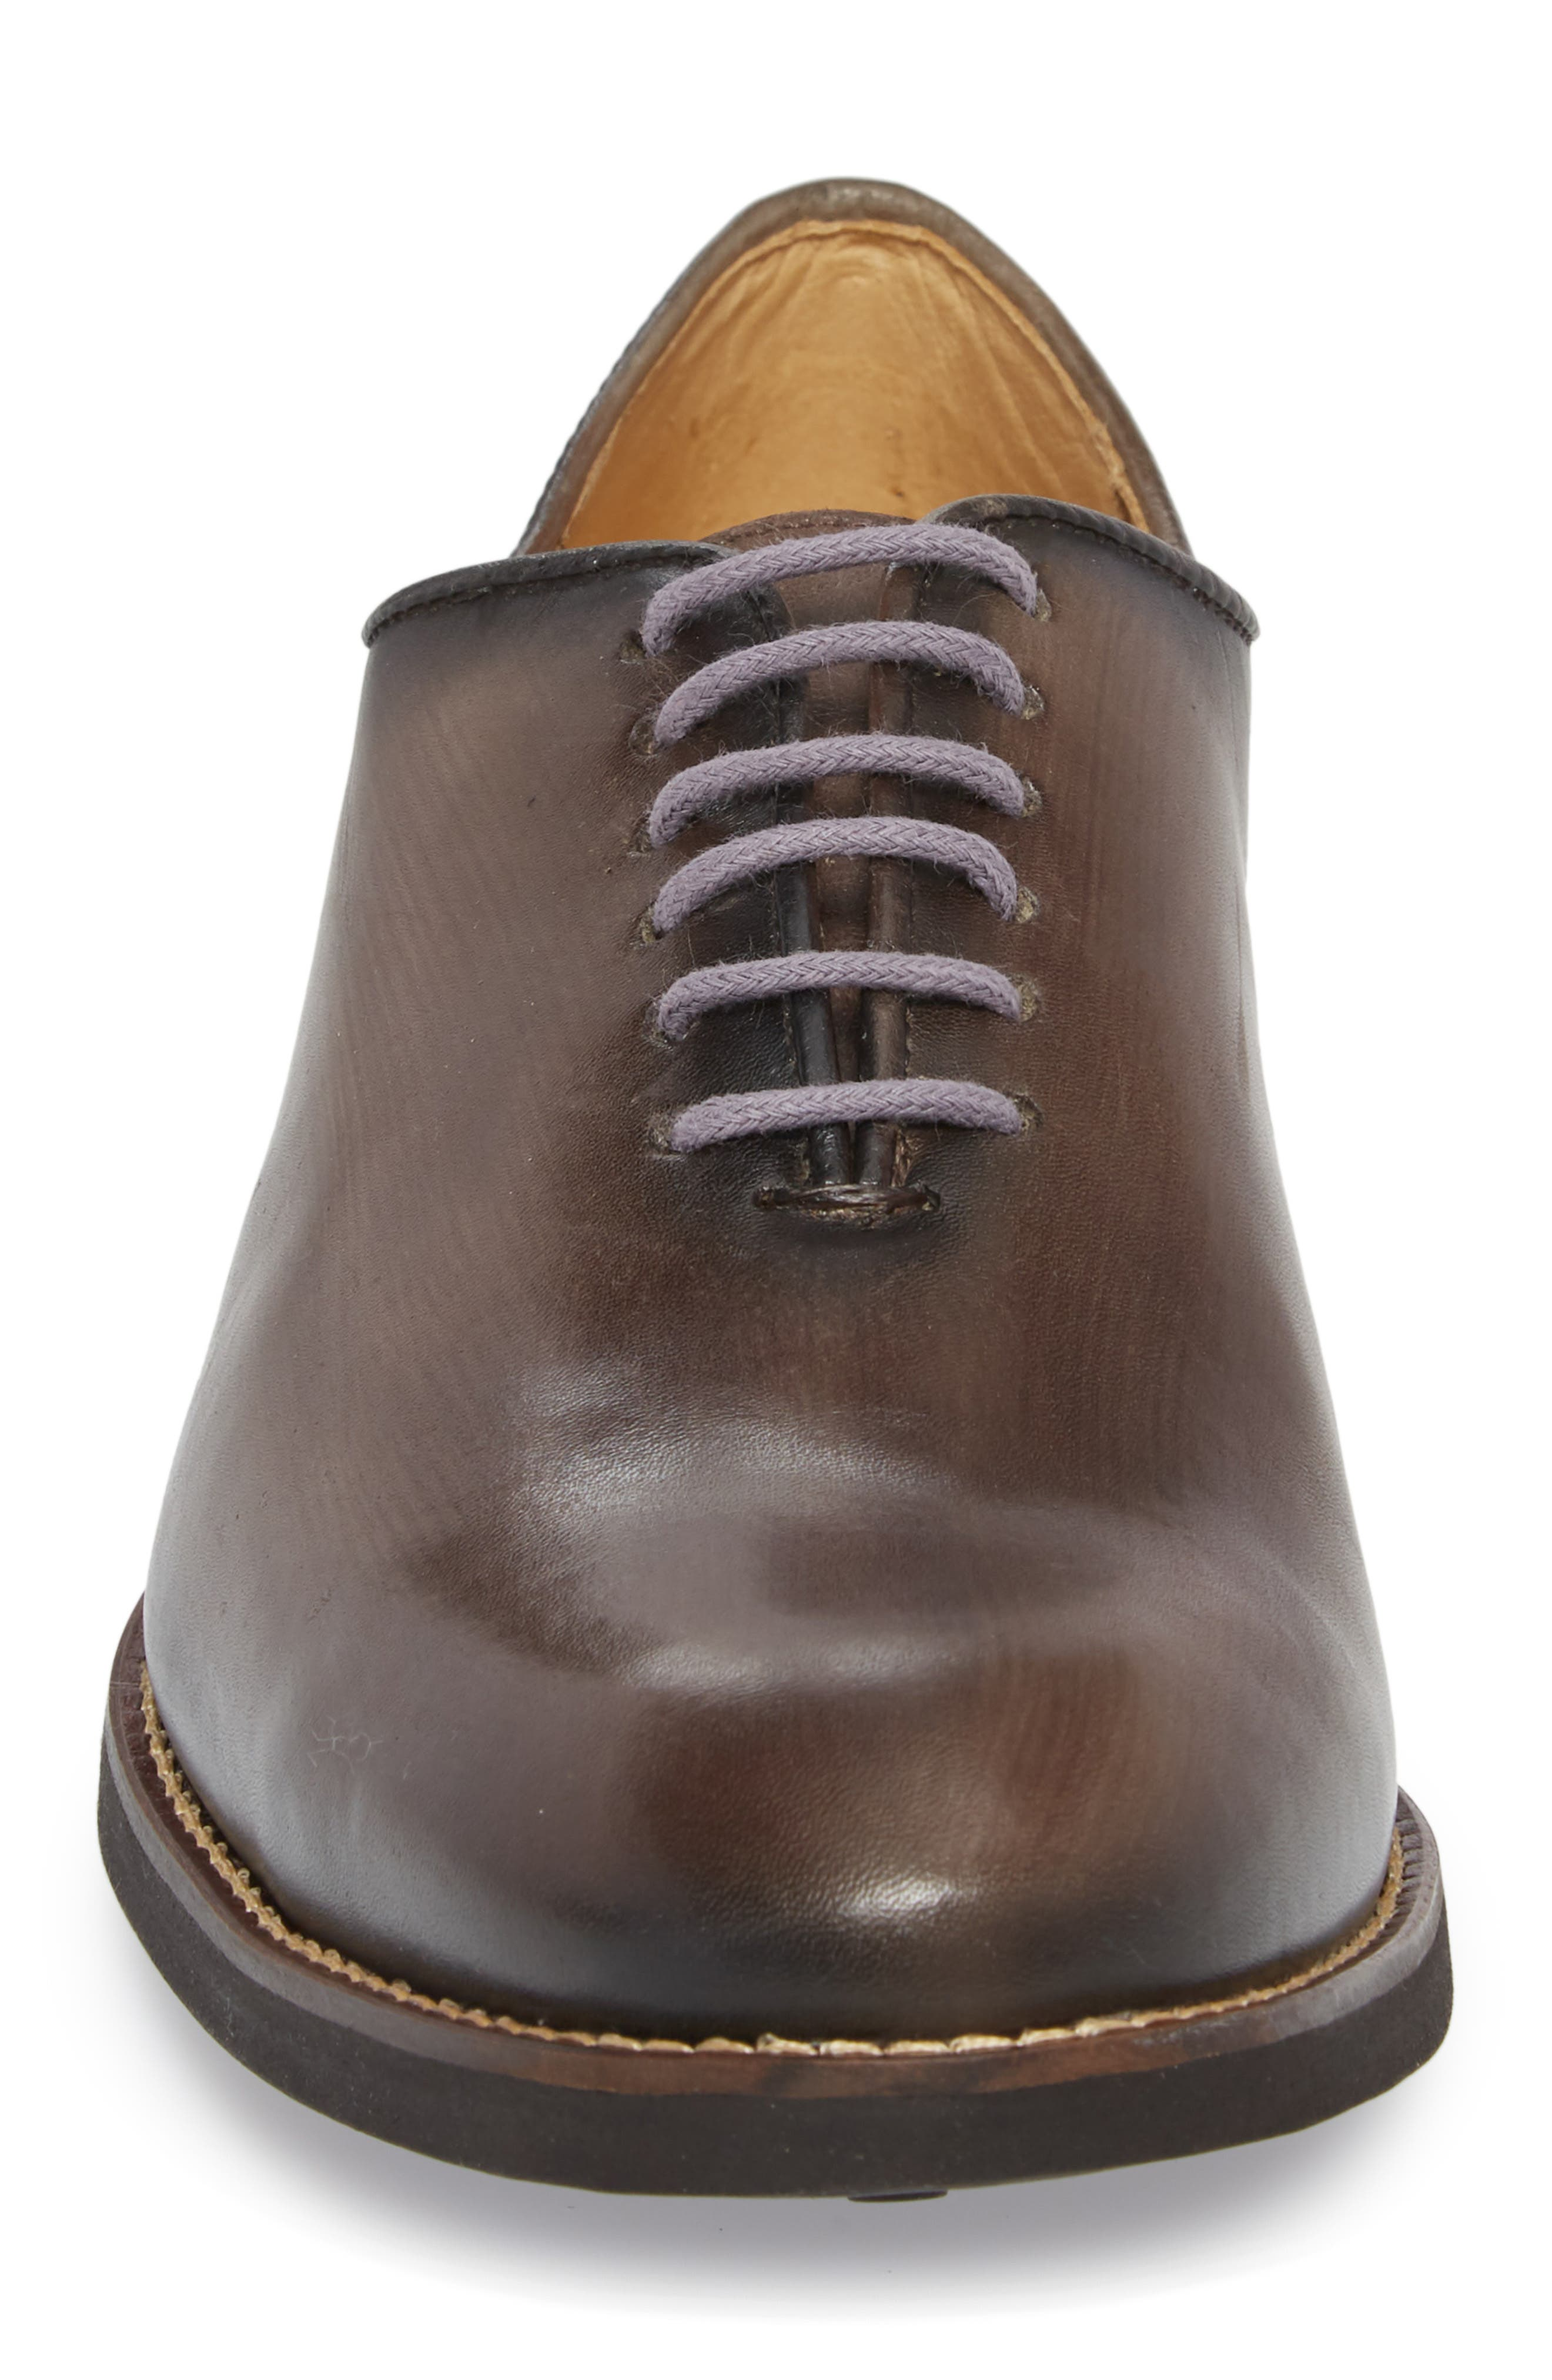 Sao Paulo II Whole Cut Shoe,                             Alternate thumbnail 4, color,                             TOUCH GREY BRUSHED LEATHER